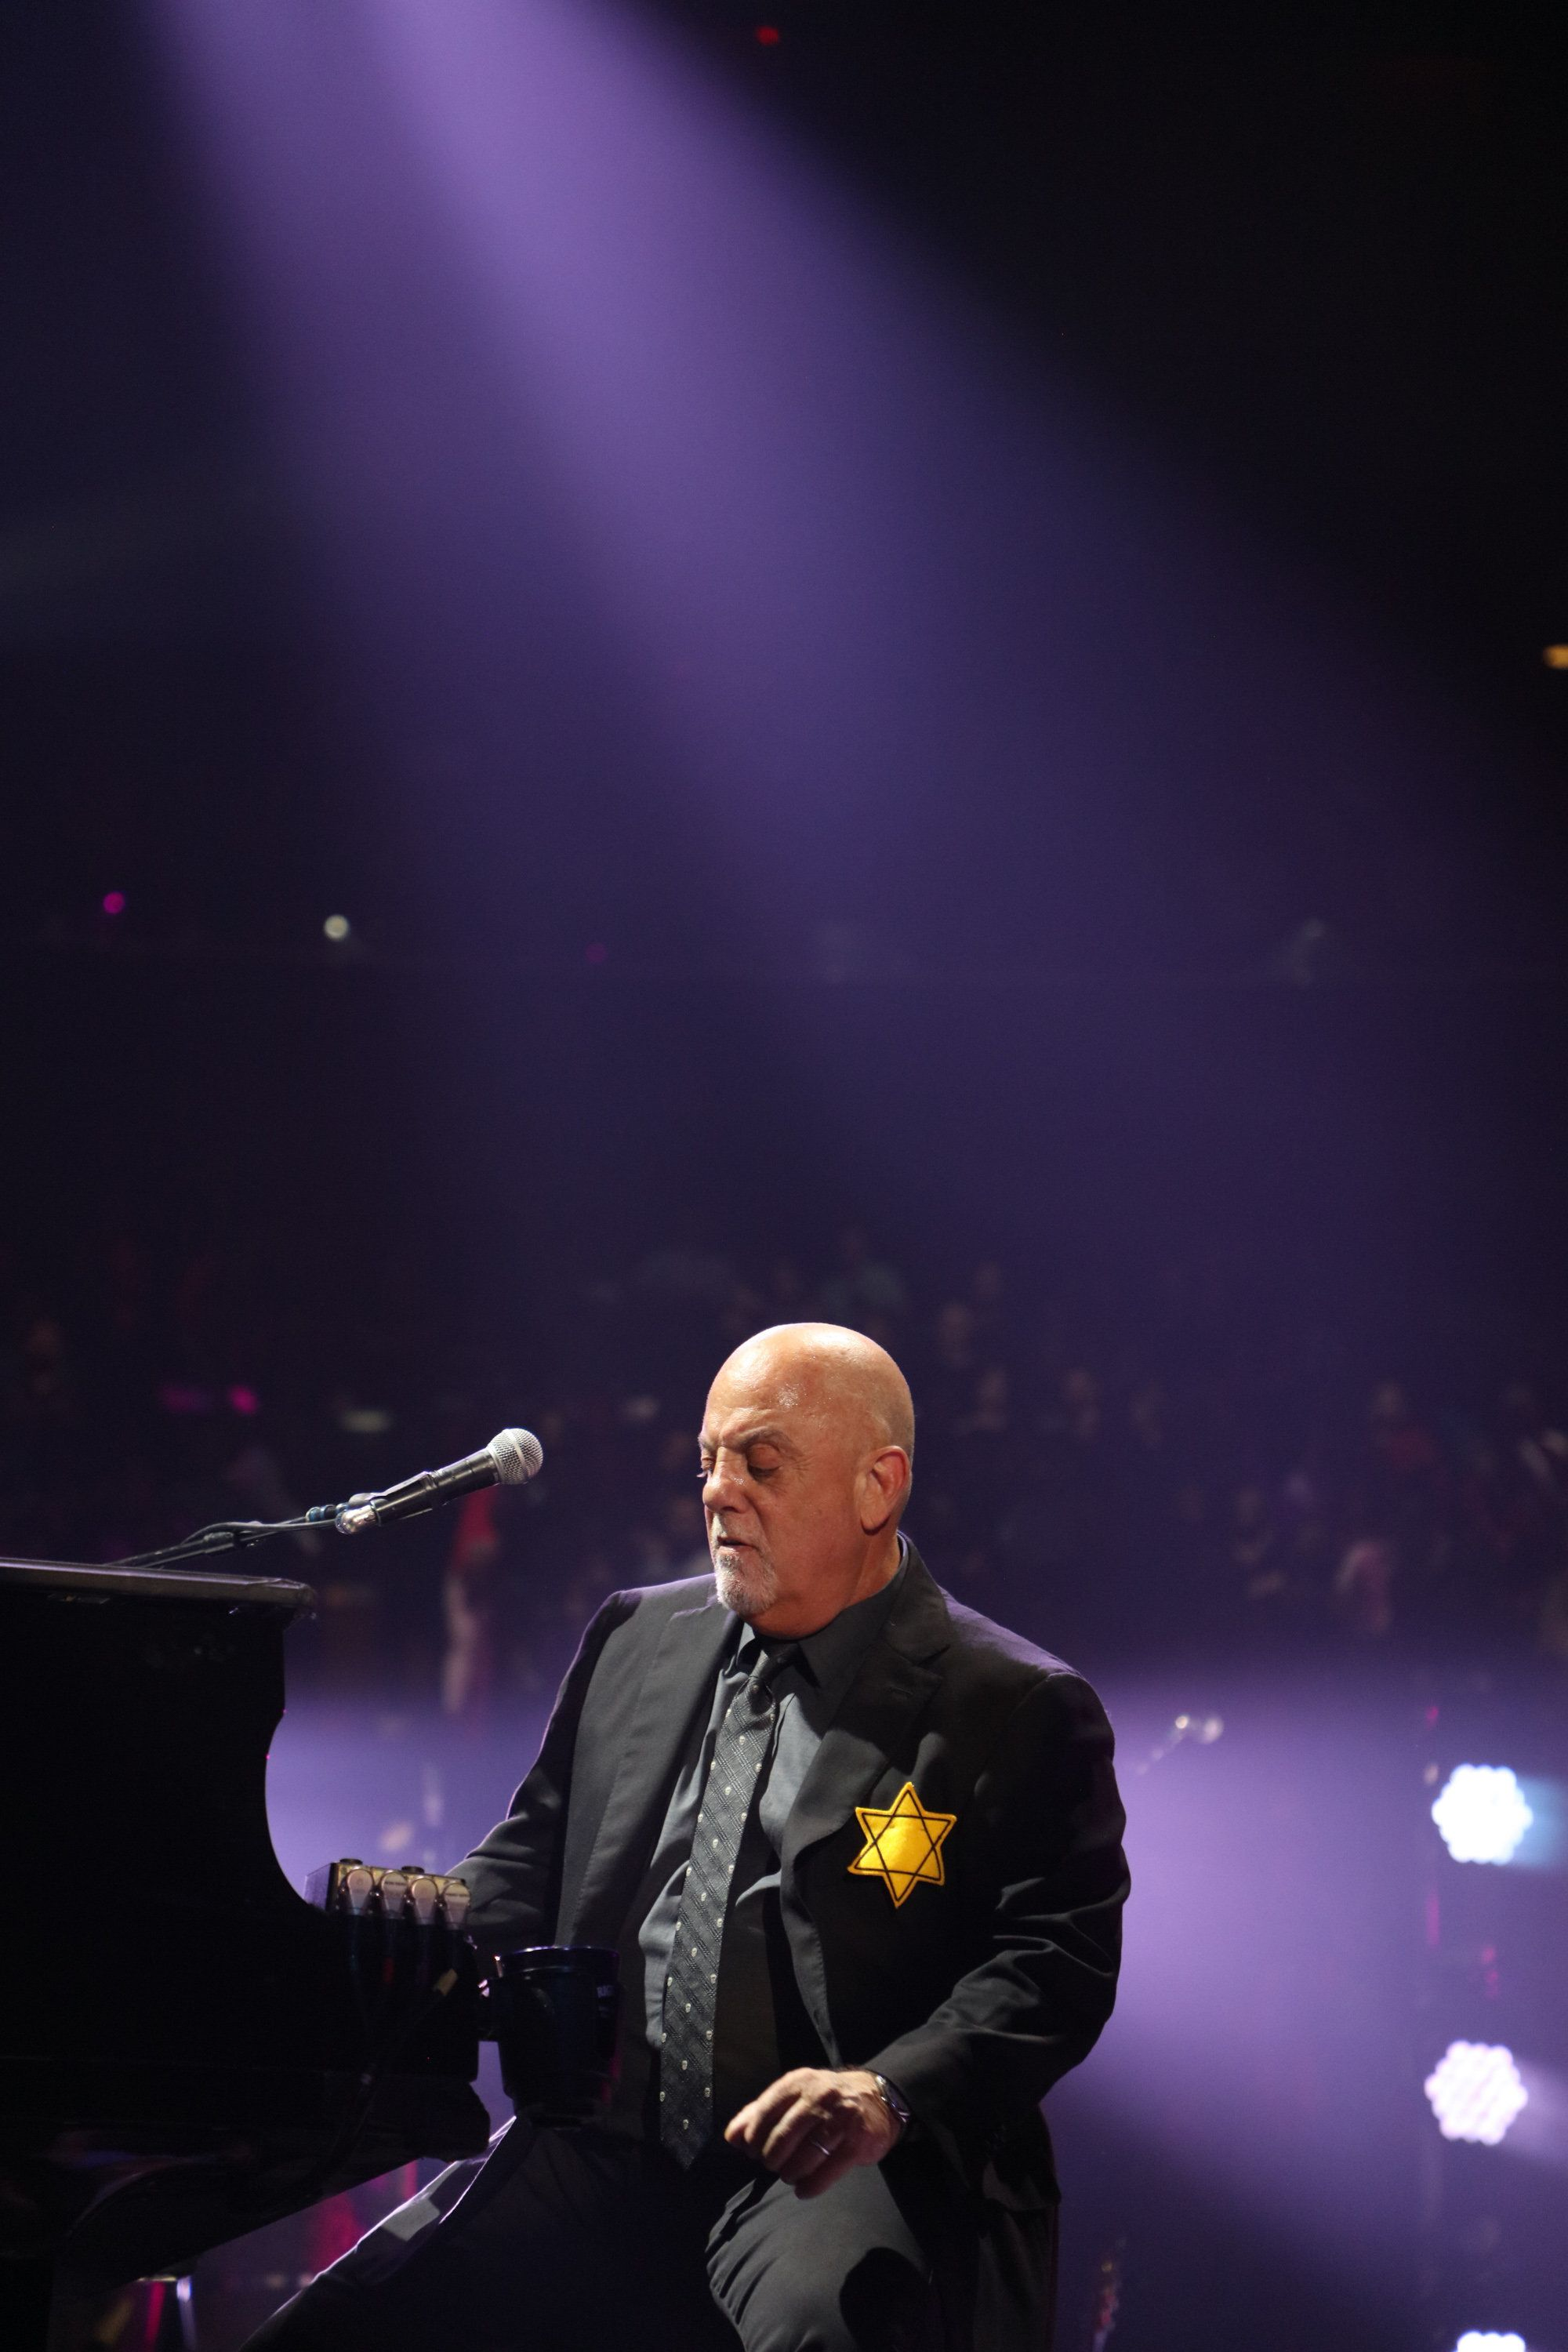 NEW YORK, NY - AUGUST 21: (EXCLUSIVE COVERAGE) Billy Joel wears a jacket with the Star of David during the encore of his 43rd sold out show at Madison Square Garden on August 21, 2017 in New York City.  (Photo by Myrna M. Suarez/Getty Images)